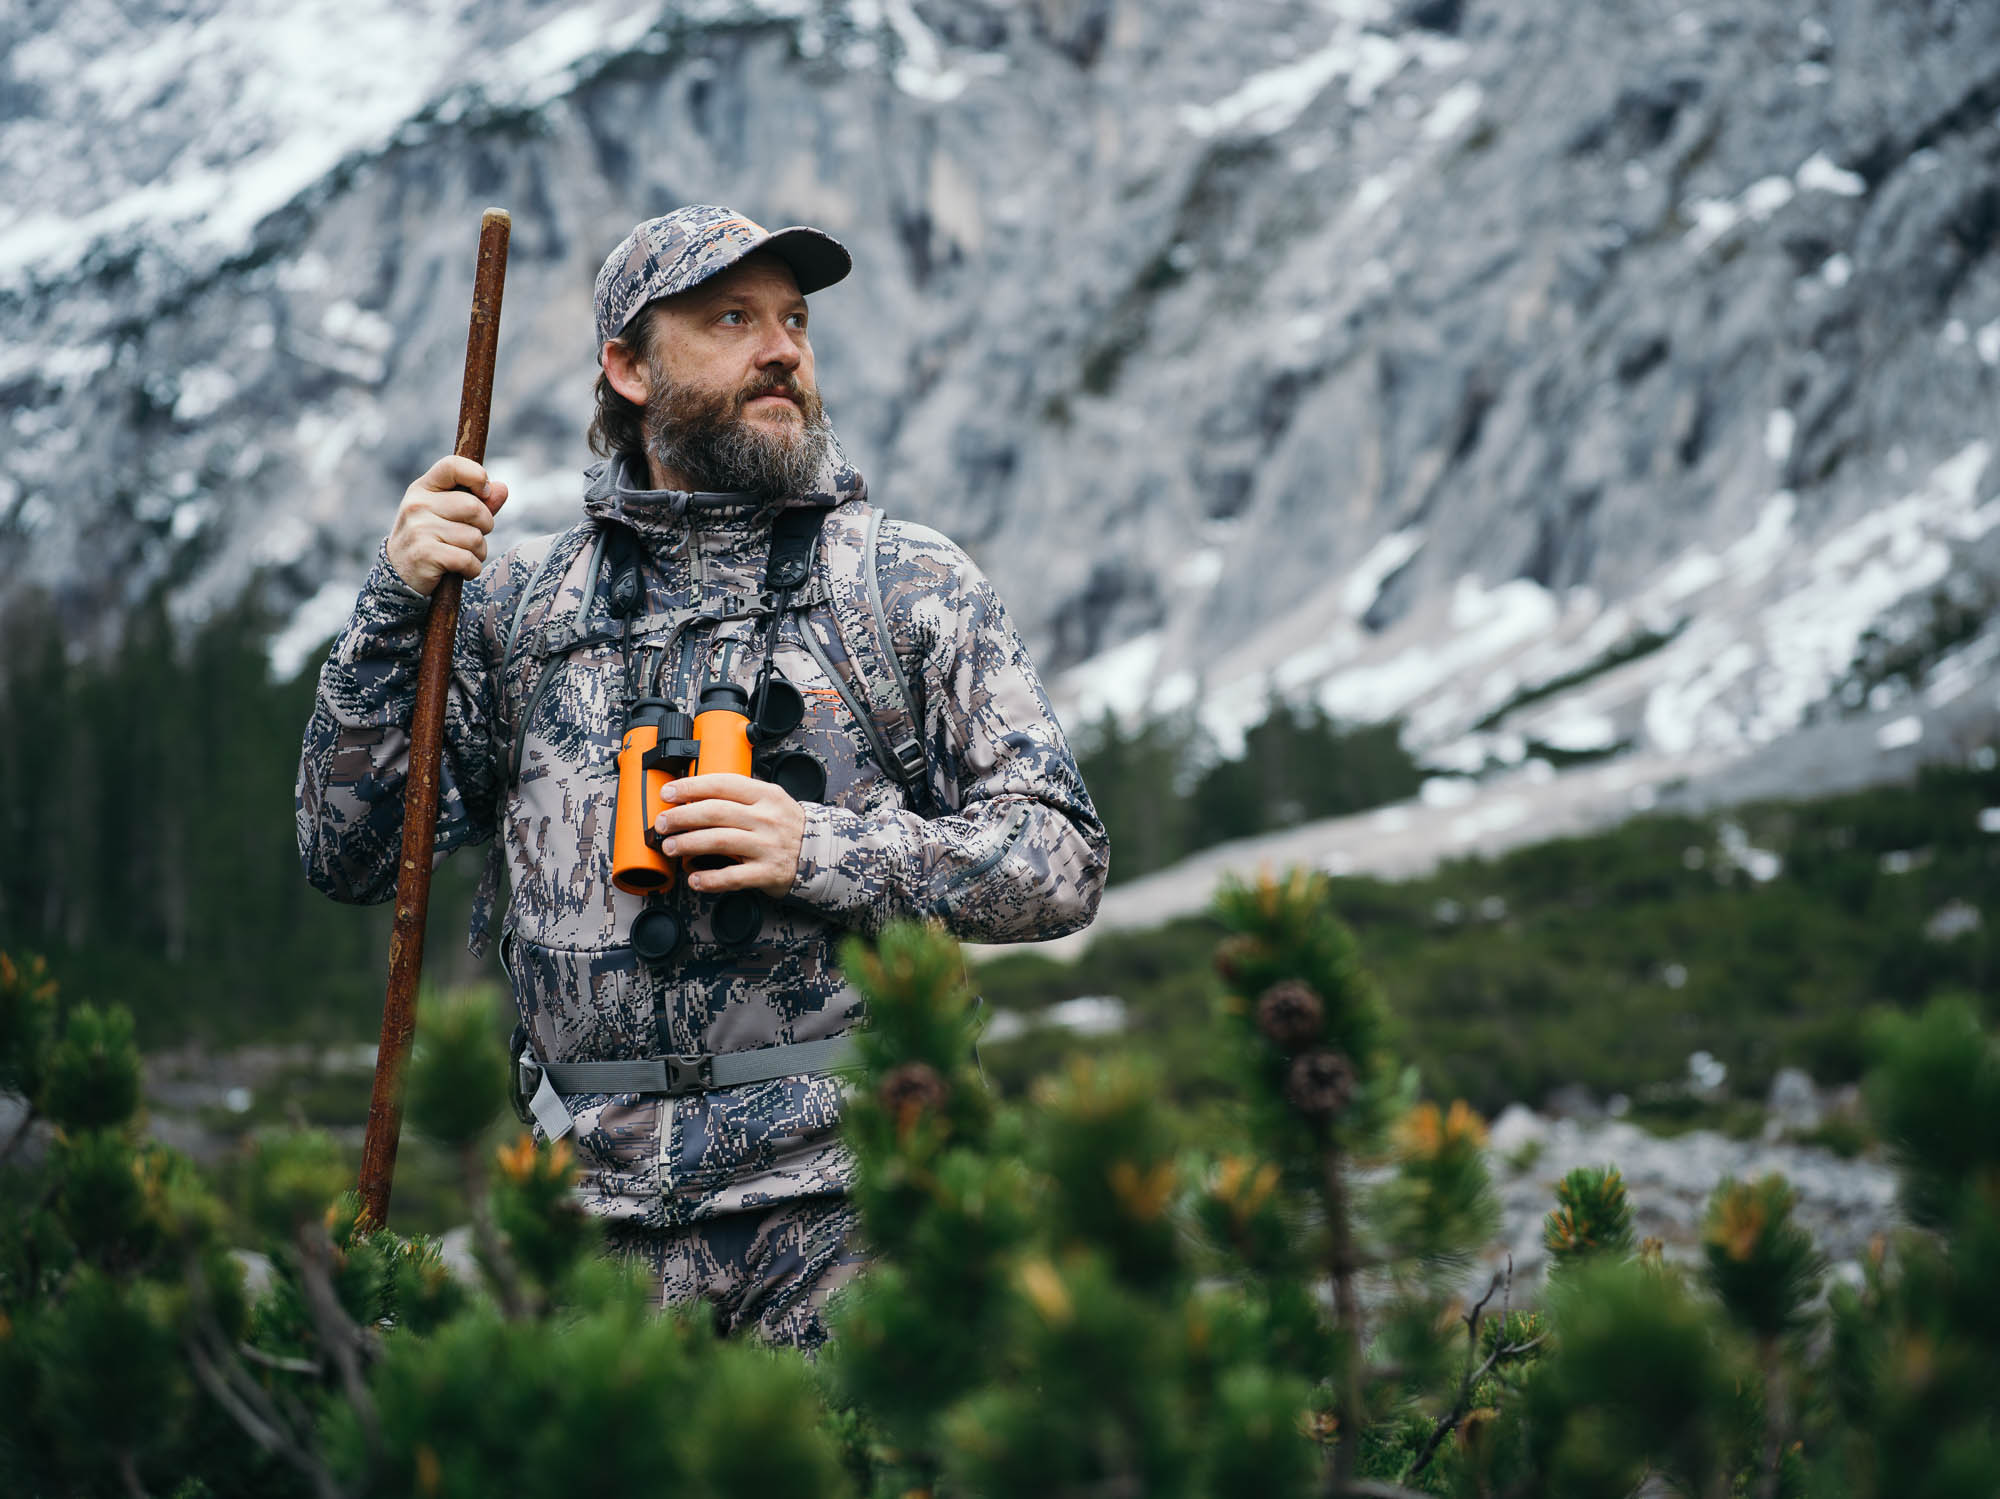 Nikolaj Juel rocks cooking, music, and hunting - out hunting in the mountains with the EL O-Range